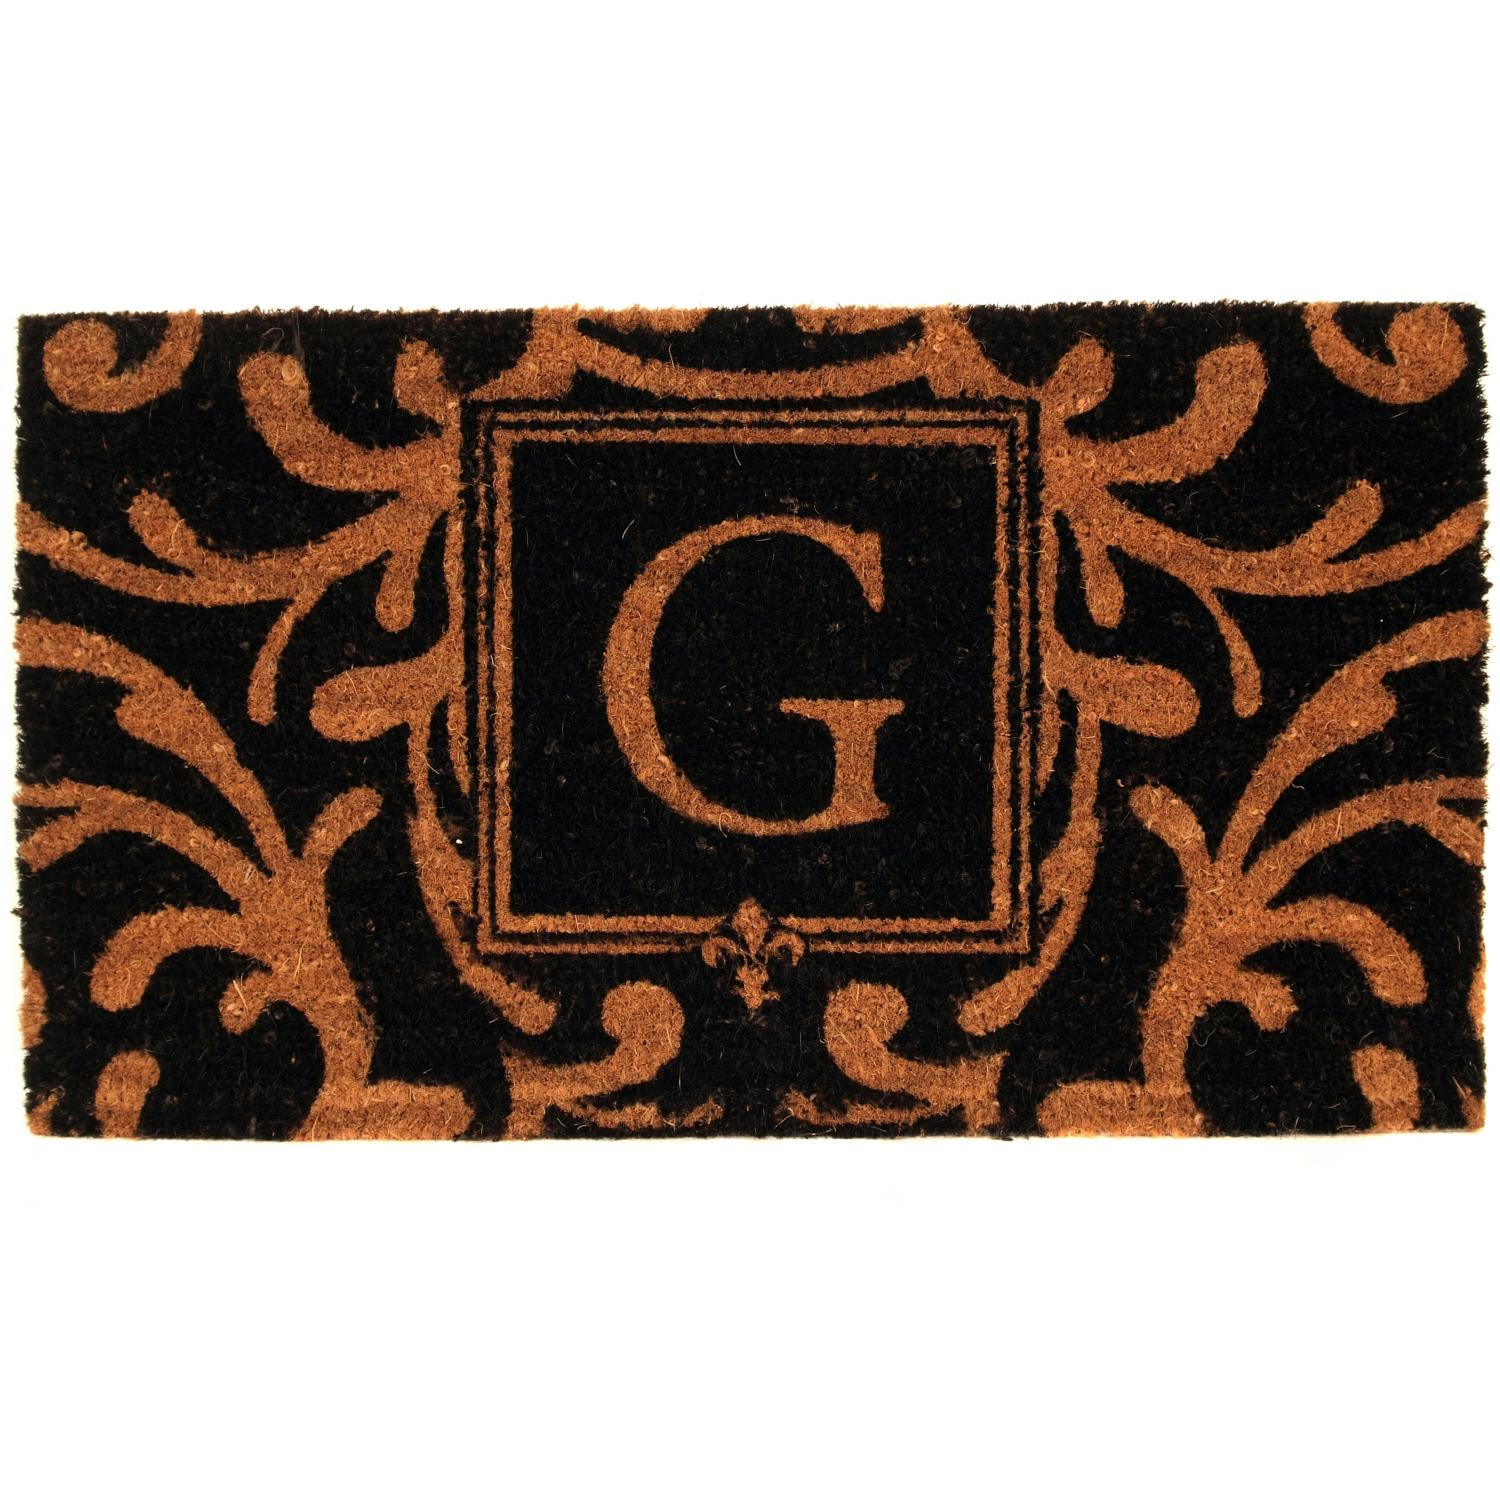 Picture of Evergreen Classic Block Monogram Coir Door Mat - Letter G